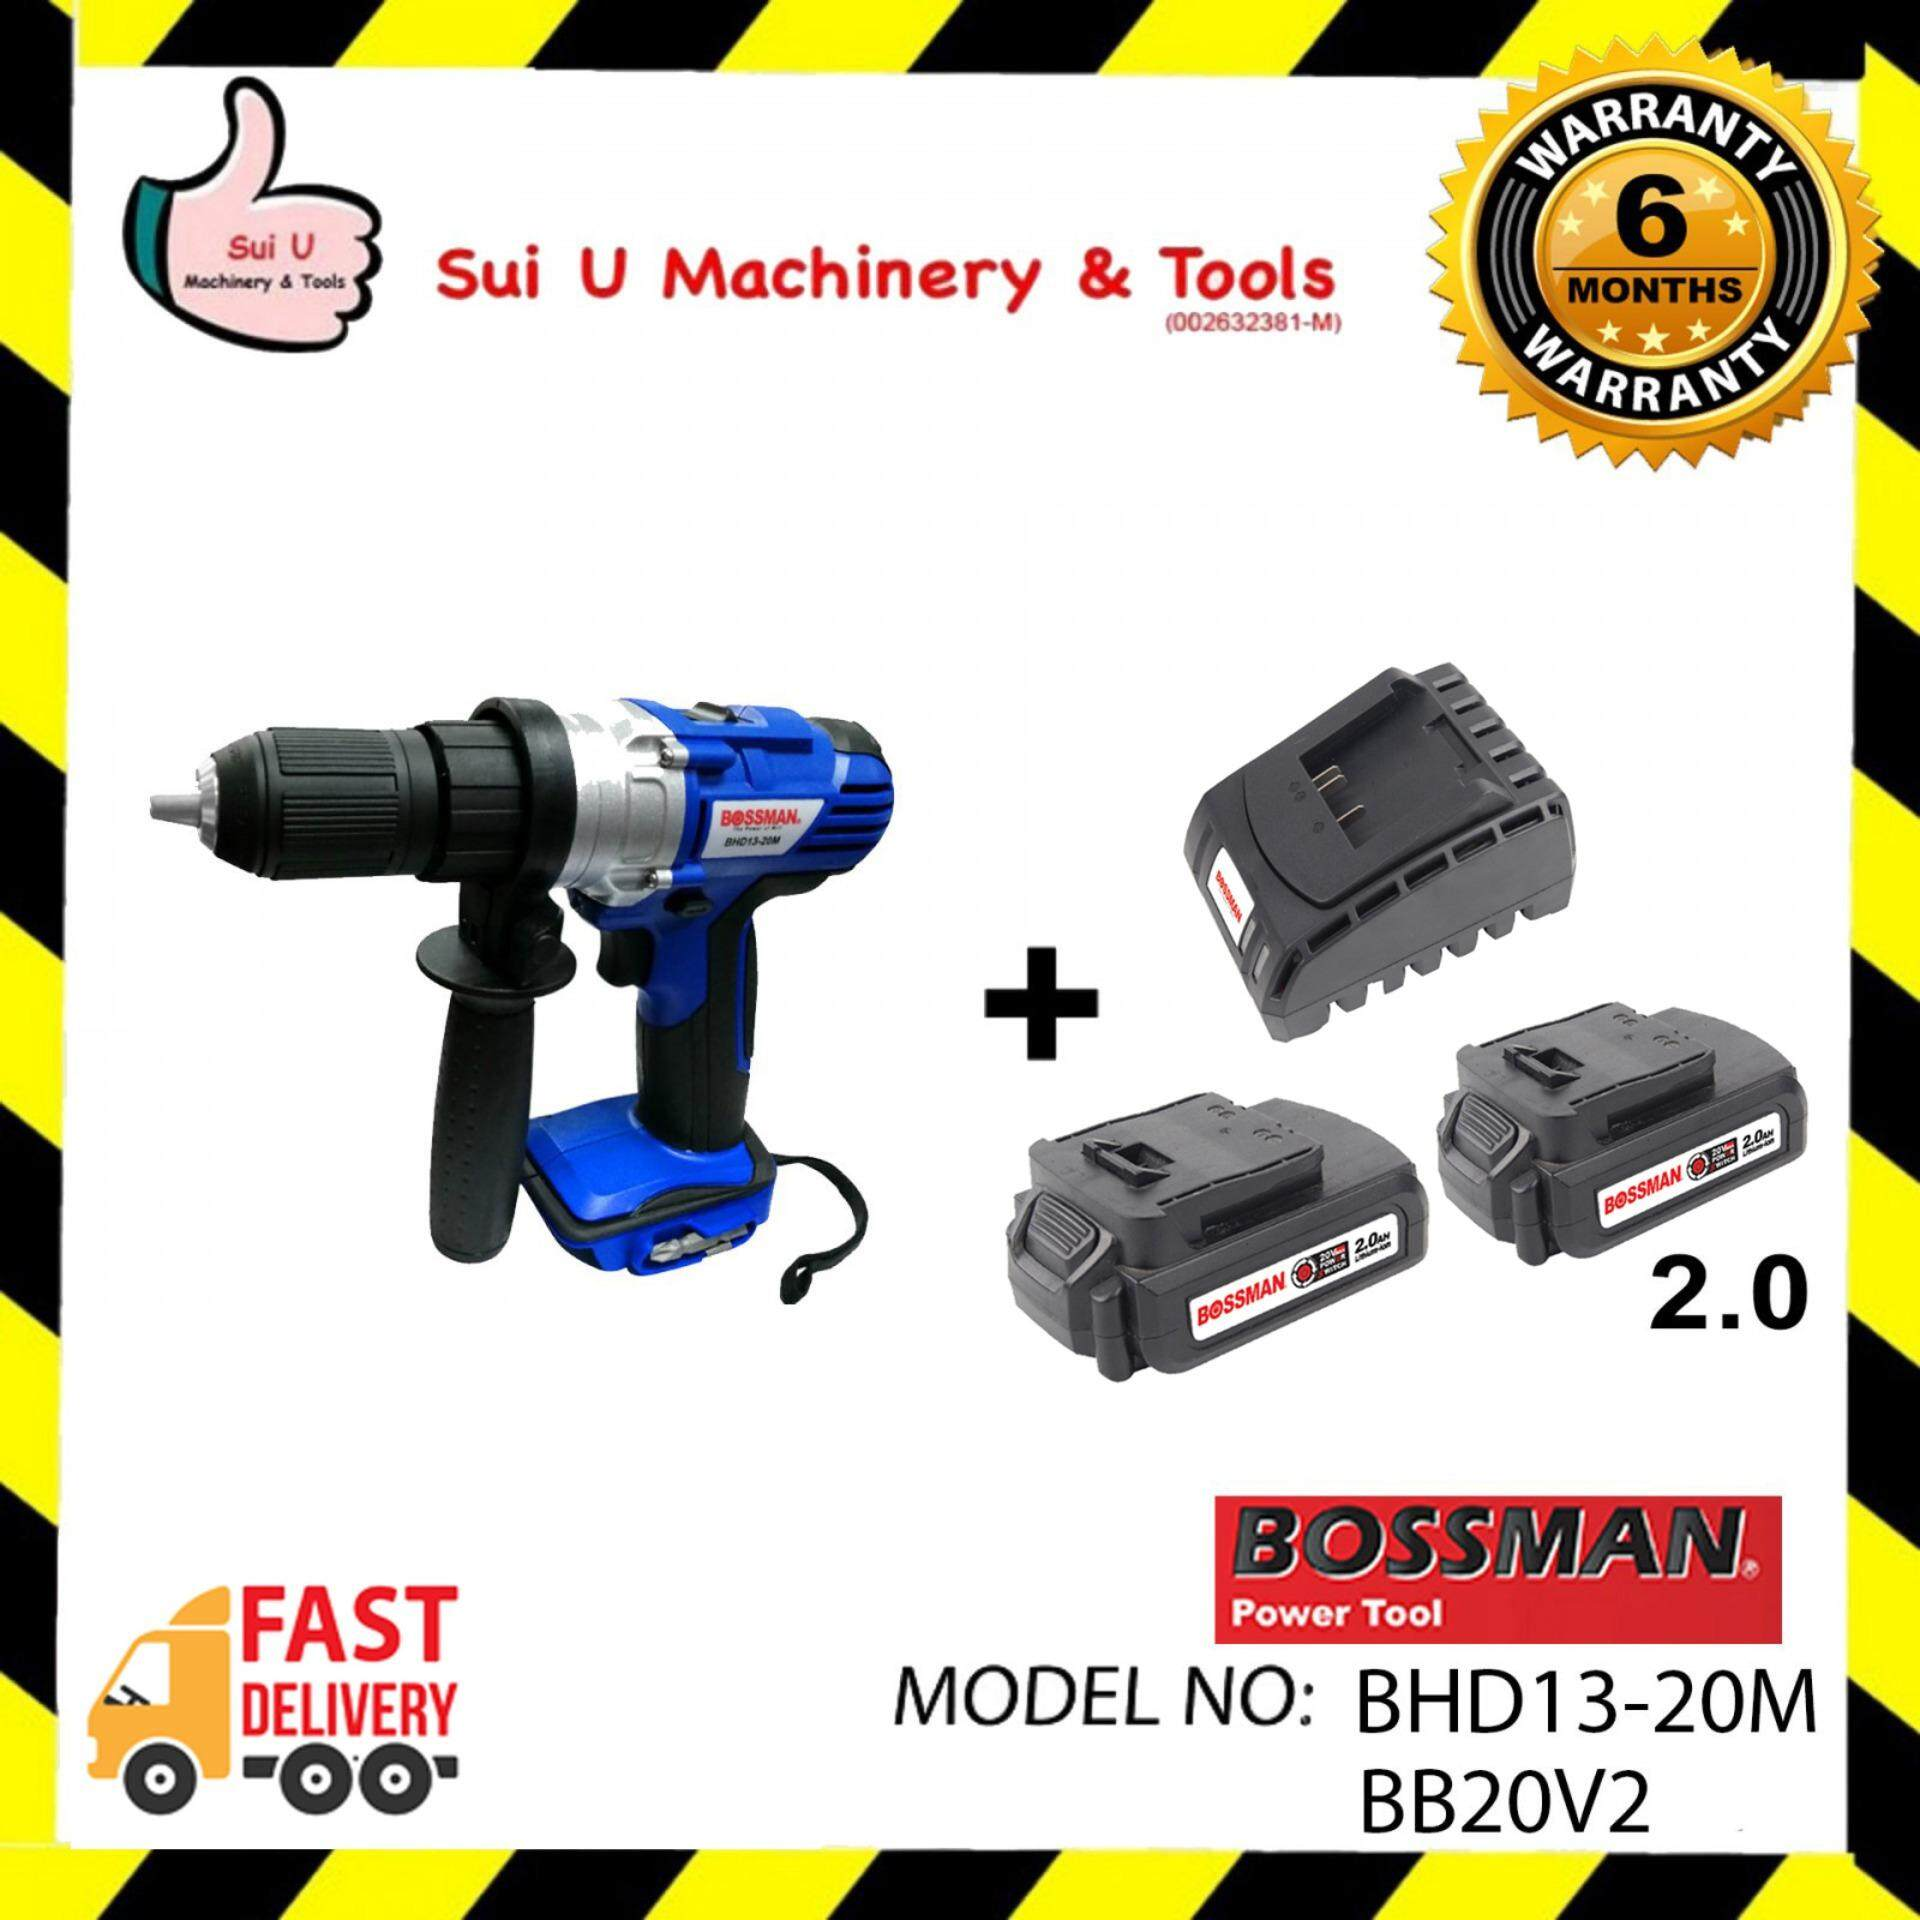 Bossman BHD13-20M 20V Cordless Hammer + 2pc Battery 2.0